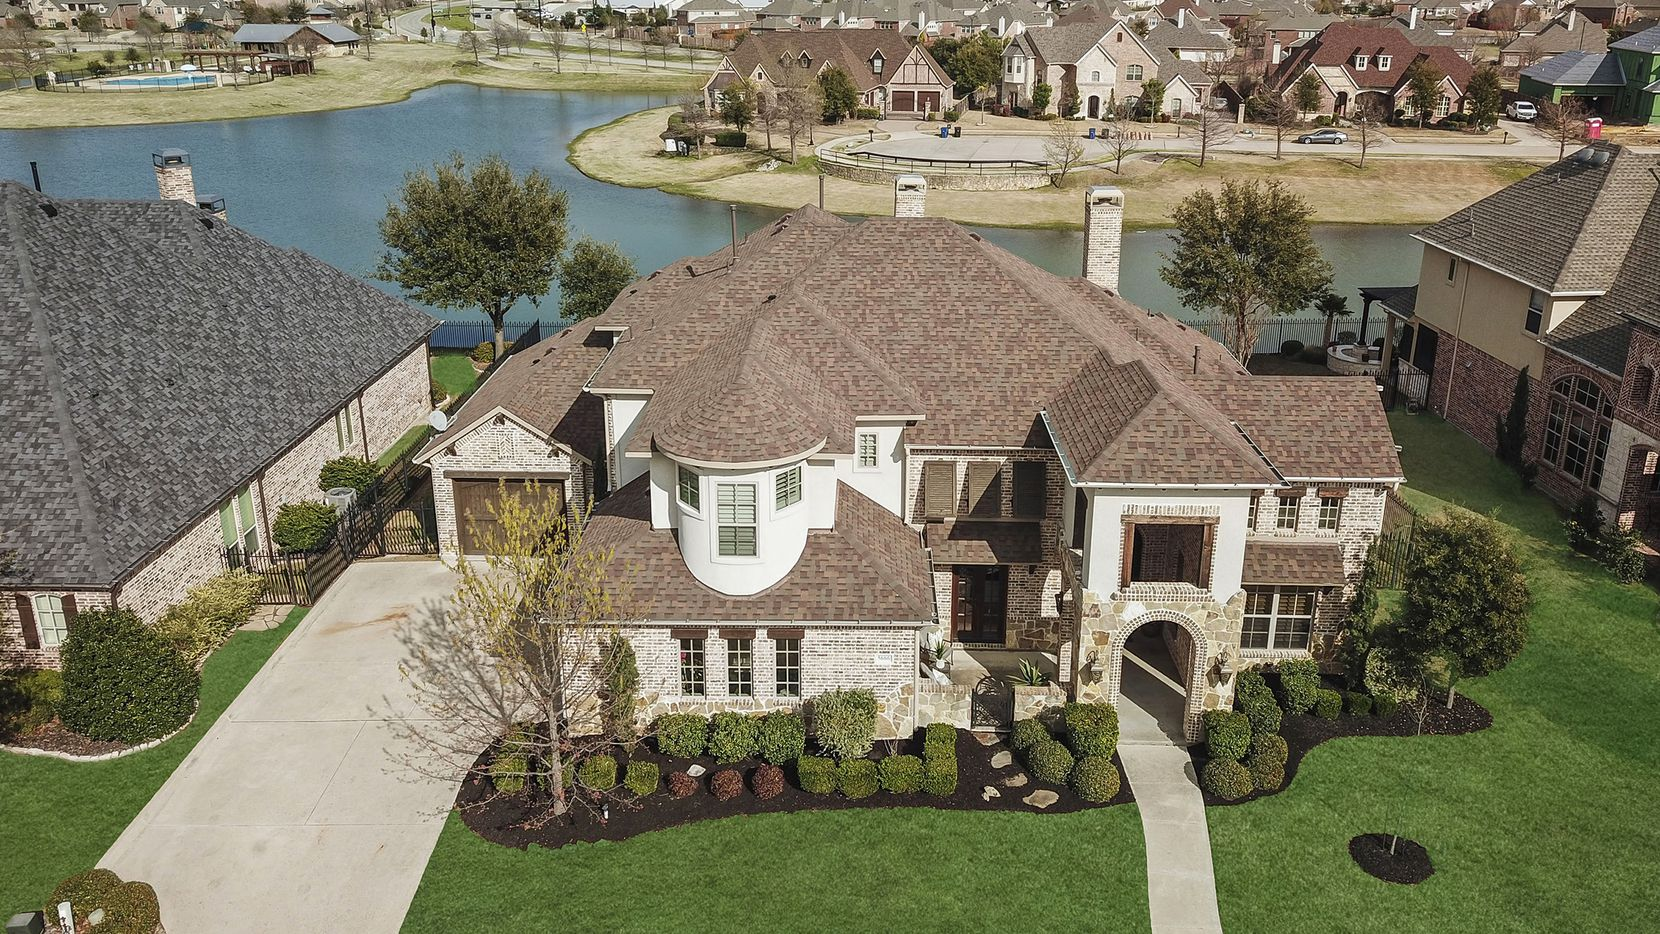 Listed for $850,000, the estate at 5666 Lakeshore Drive in Frisco provides upgrades and unobstructed lake views.